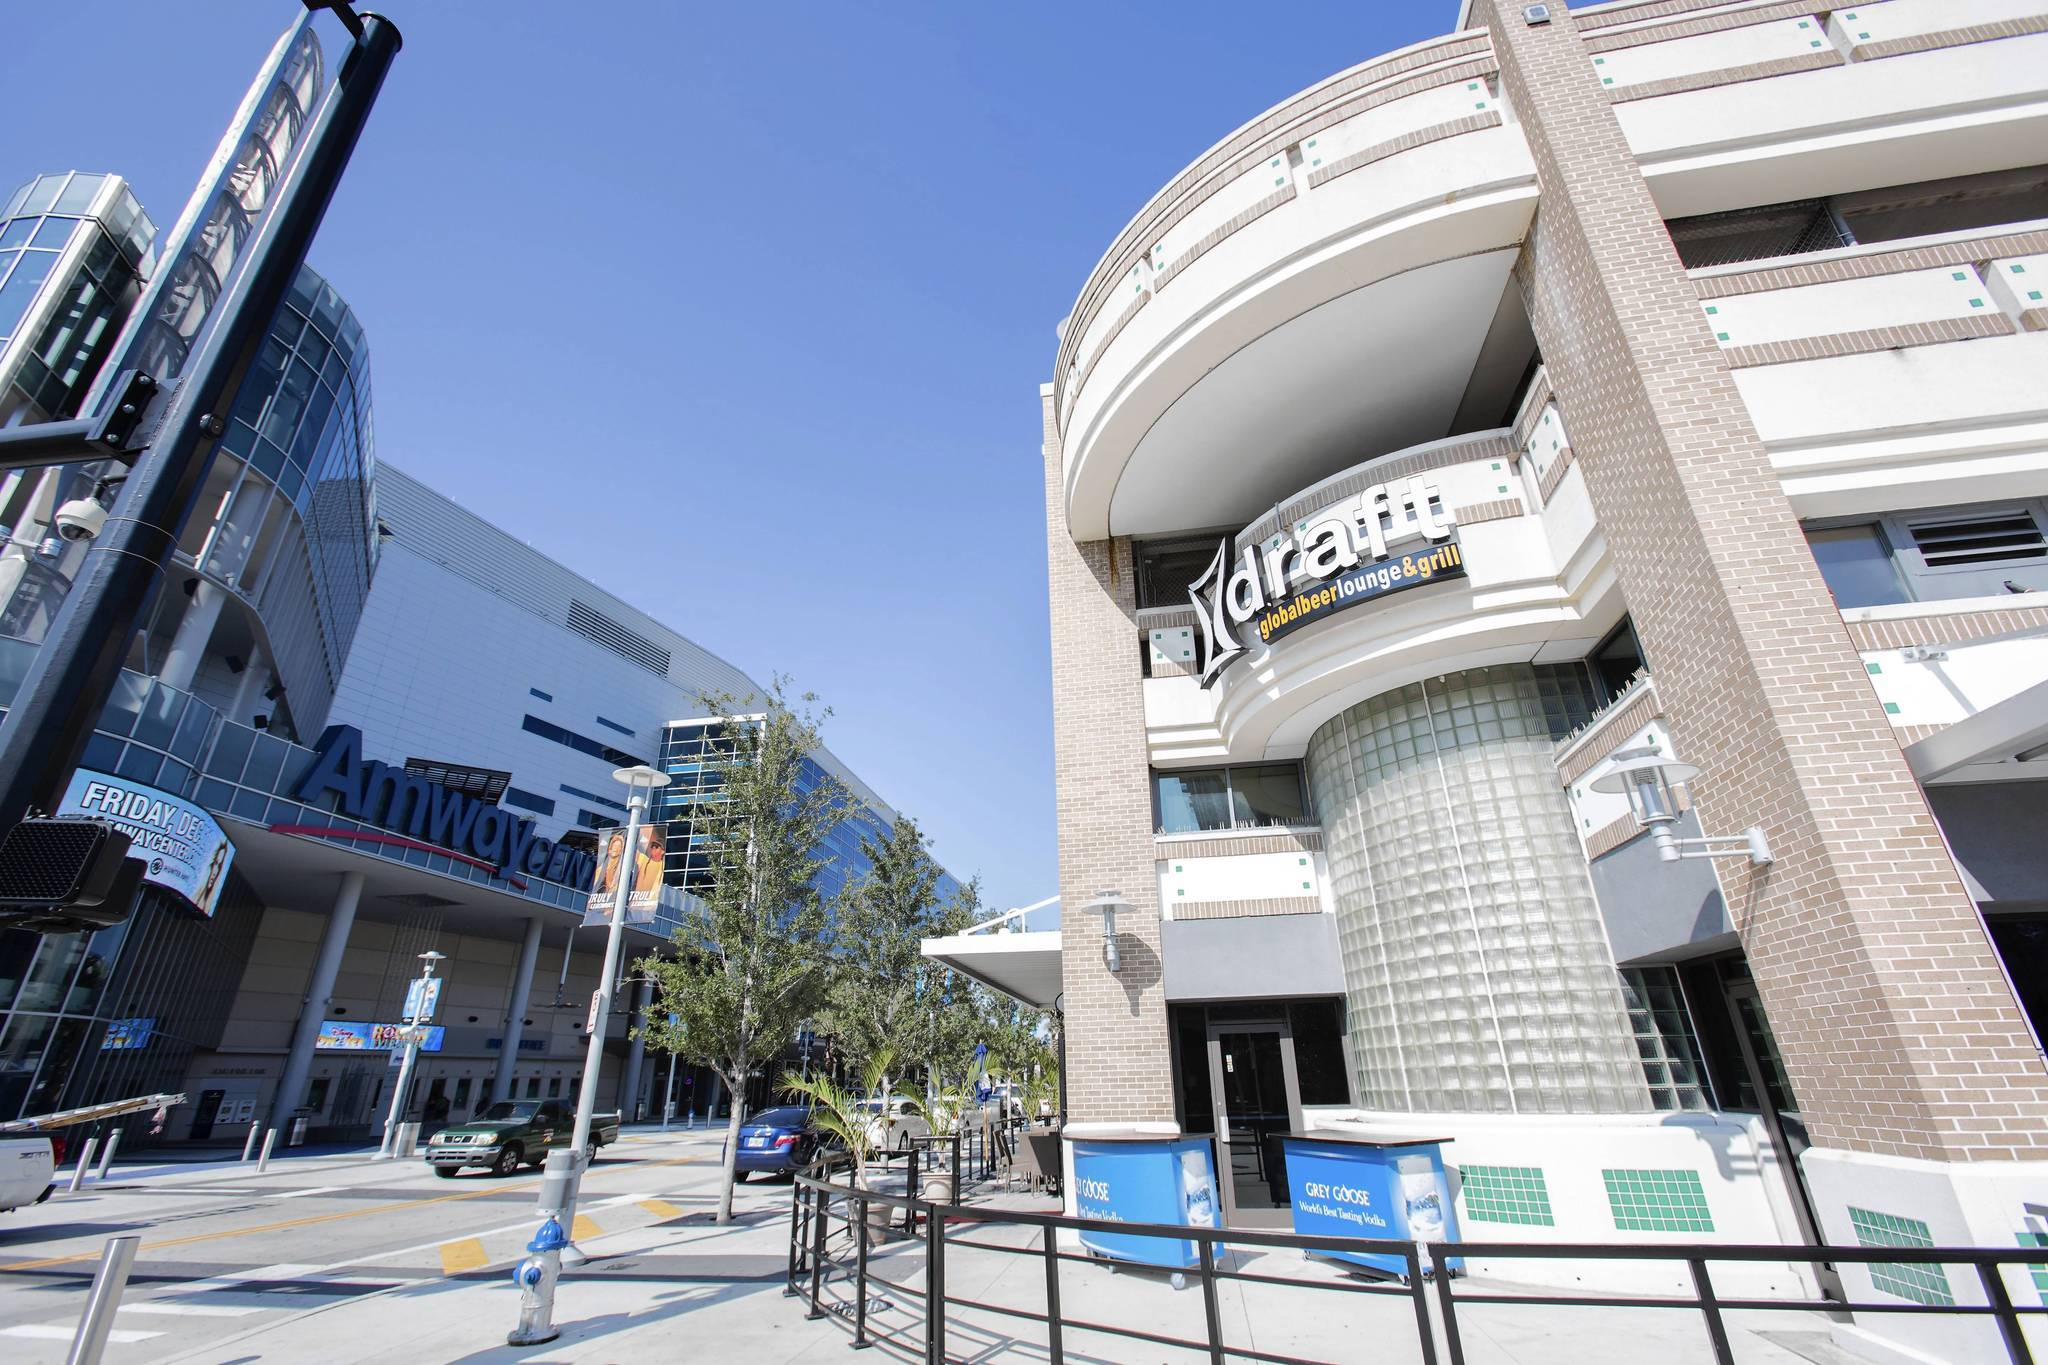 Bar near amway center runs up 57 000 debt to taxpayers for Mercedes benz lounge amway center